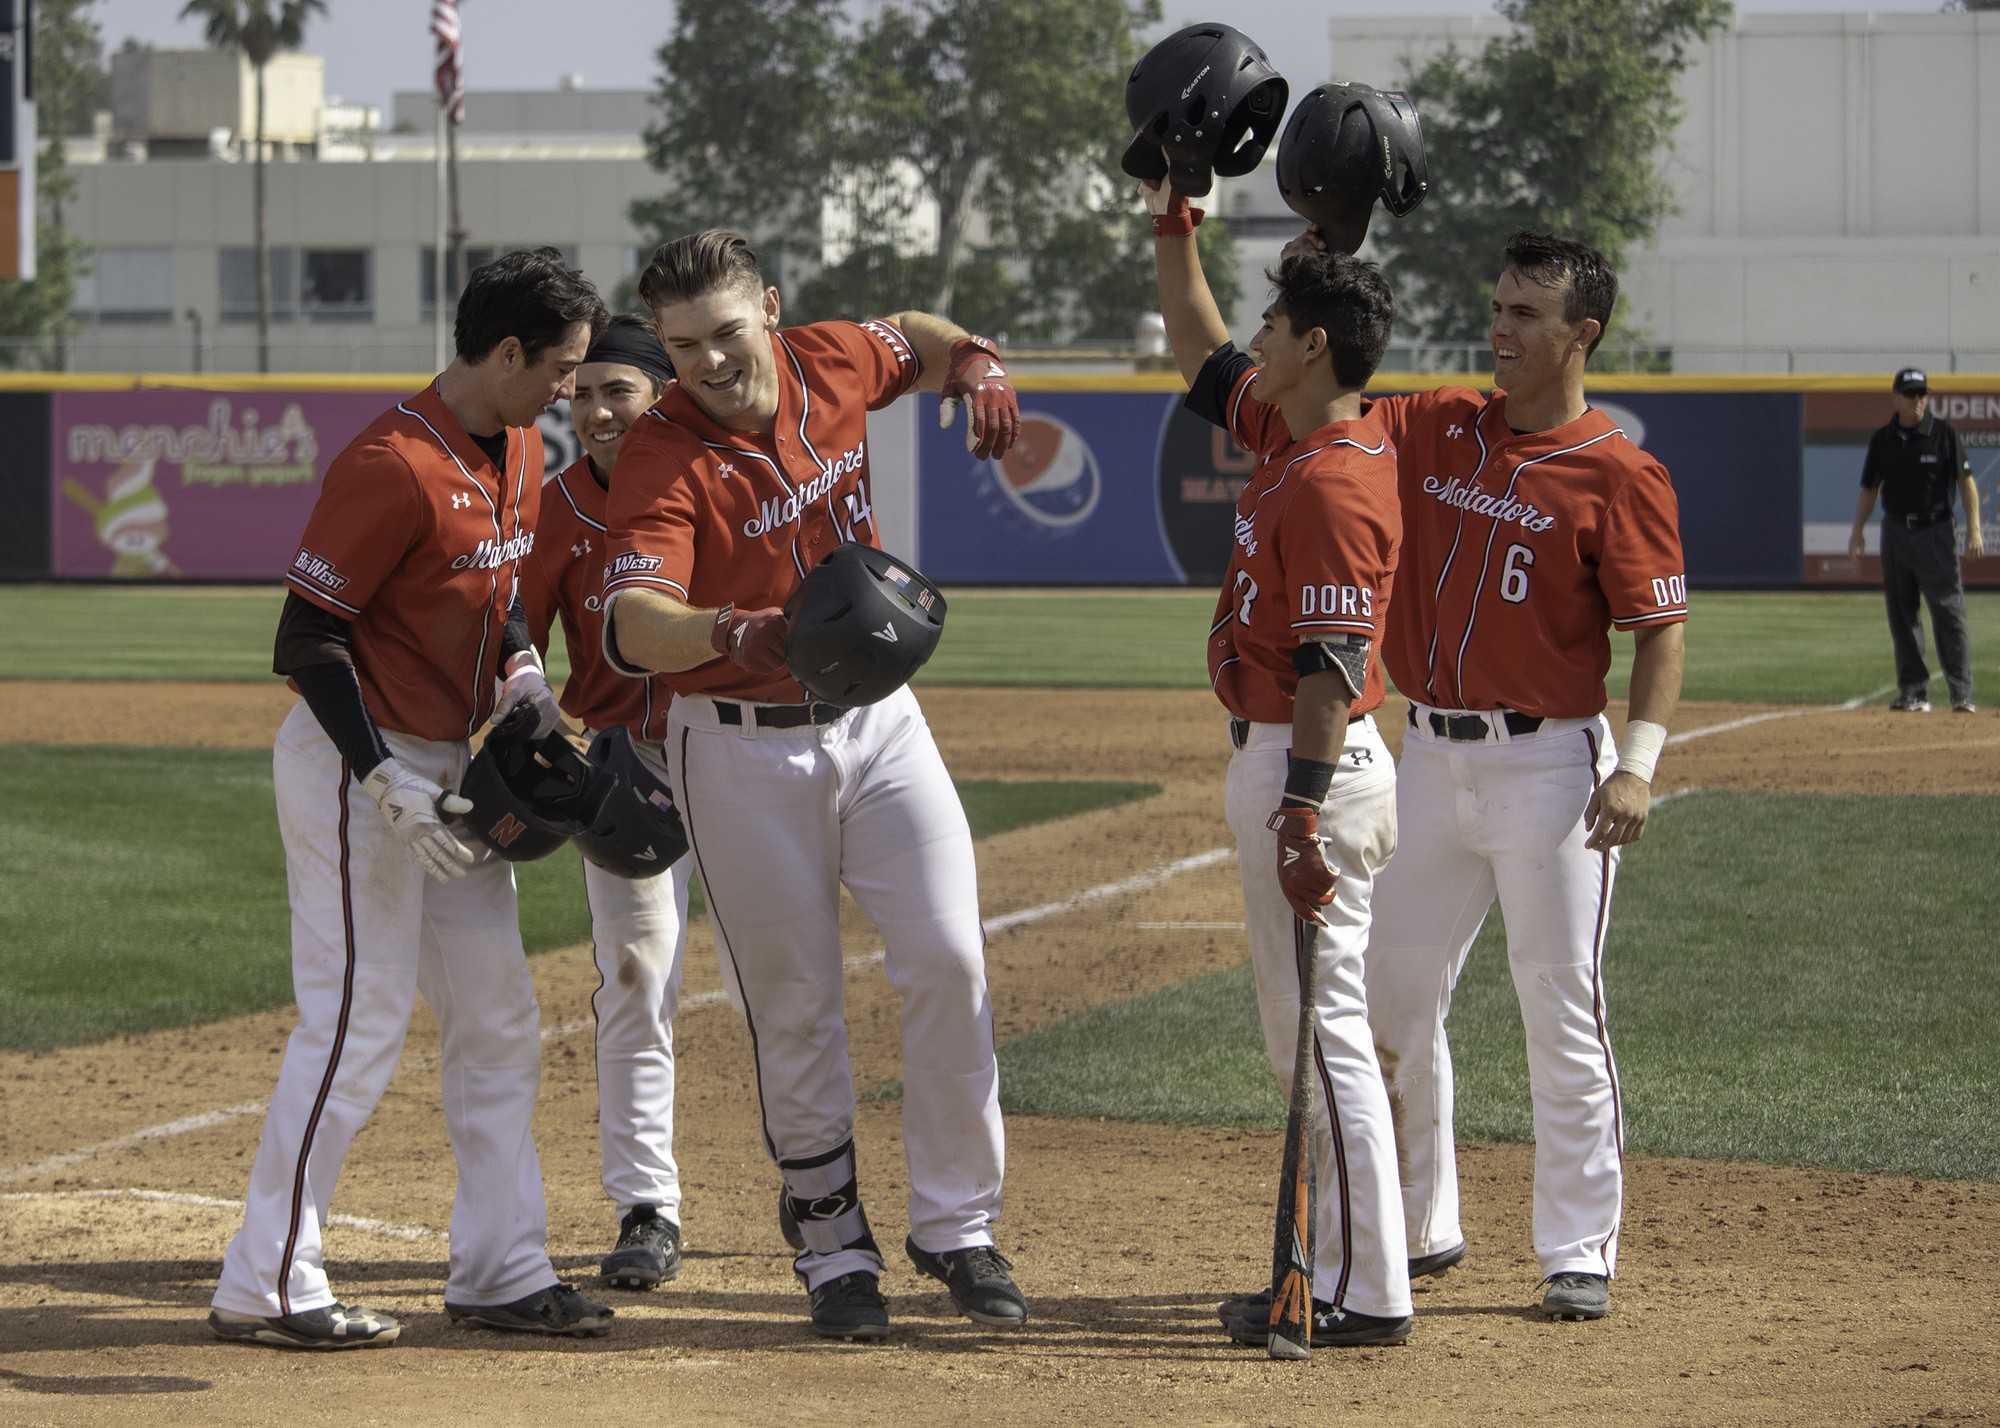 Junior Blake Doremus (center) is congratulated by his teammates after hitting a grand slam to give his team the lead in the seventh inning of CSUN's 6-3 victory over Hawaii on Sunday. Doremus pinch hit for sophomore Victor Cerny and deposited a 1-1 pitch over the left field wall, winning the game and the series for the Matadors. Photo credit: Tyler Wainfeld